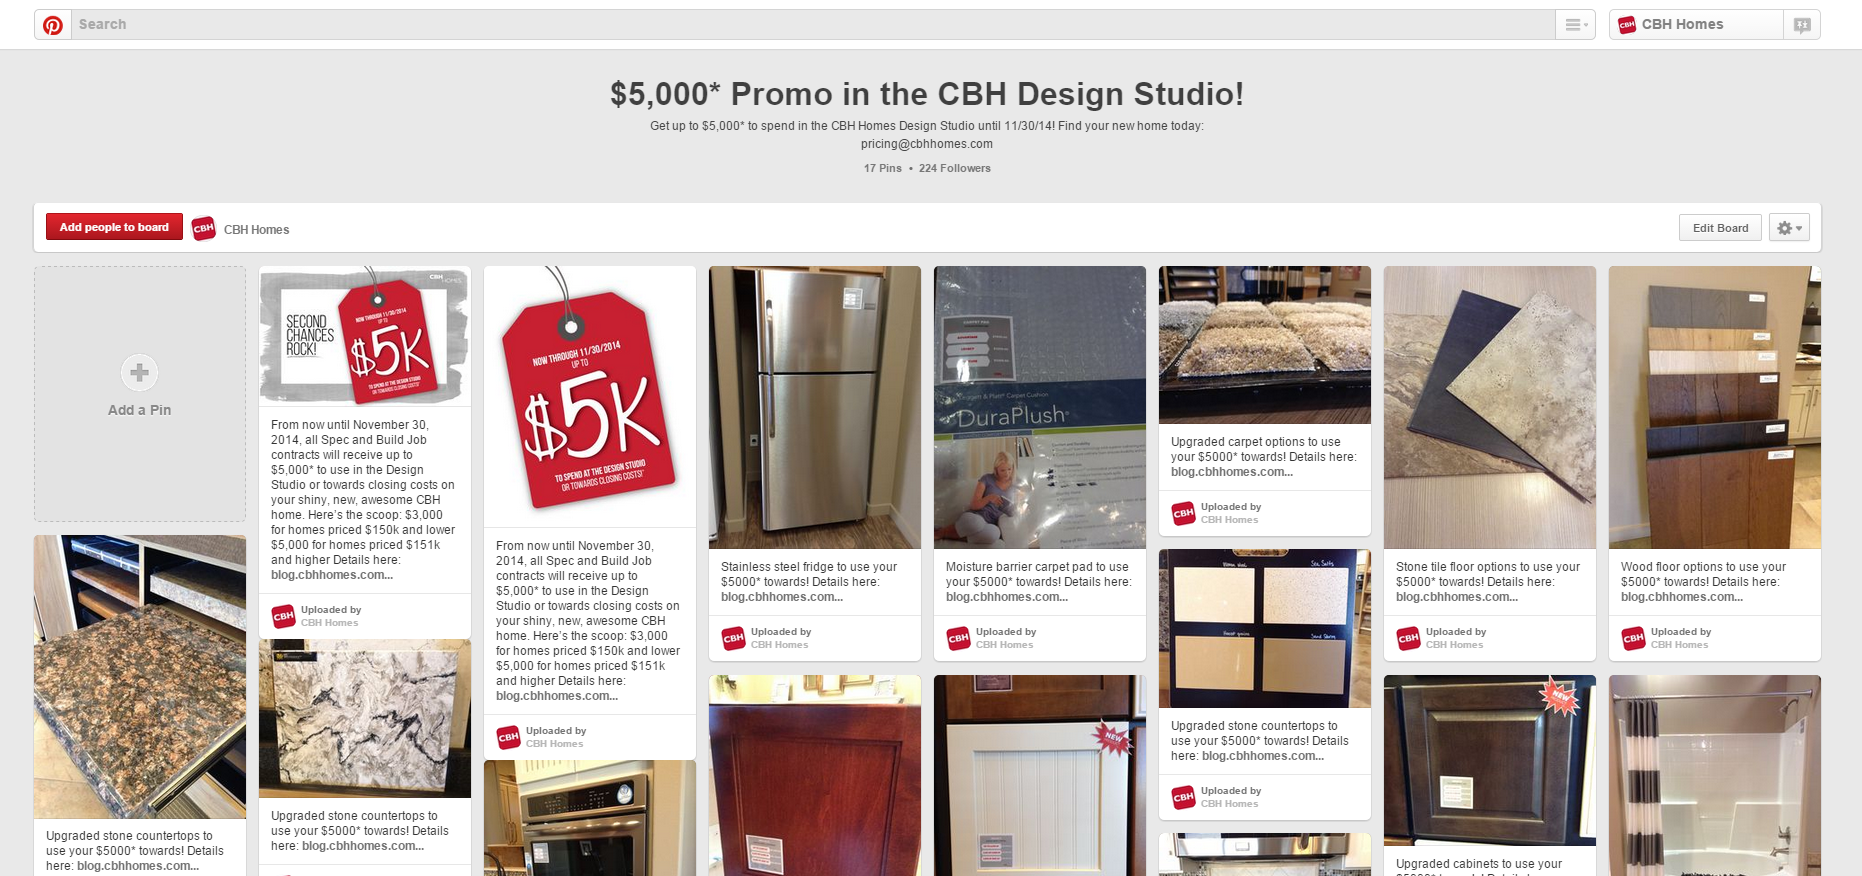 $5,000* Promo on Pinterest! - CBH Homes Blog